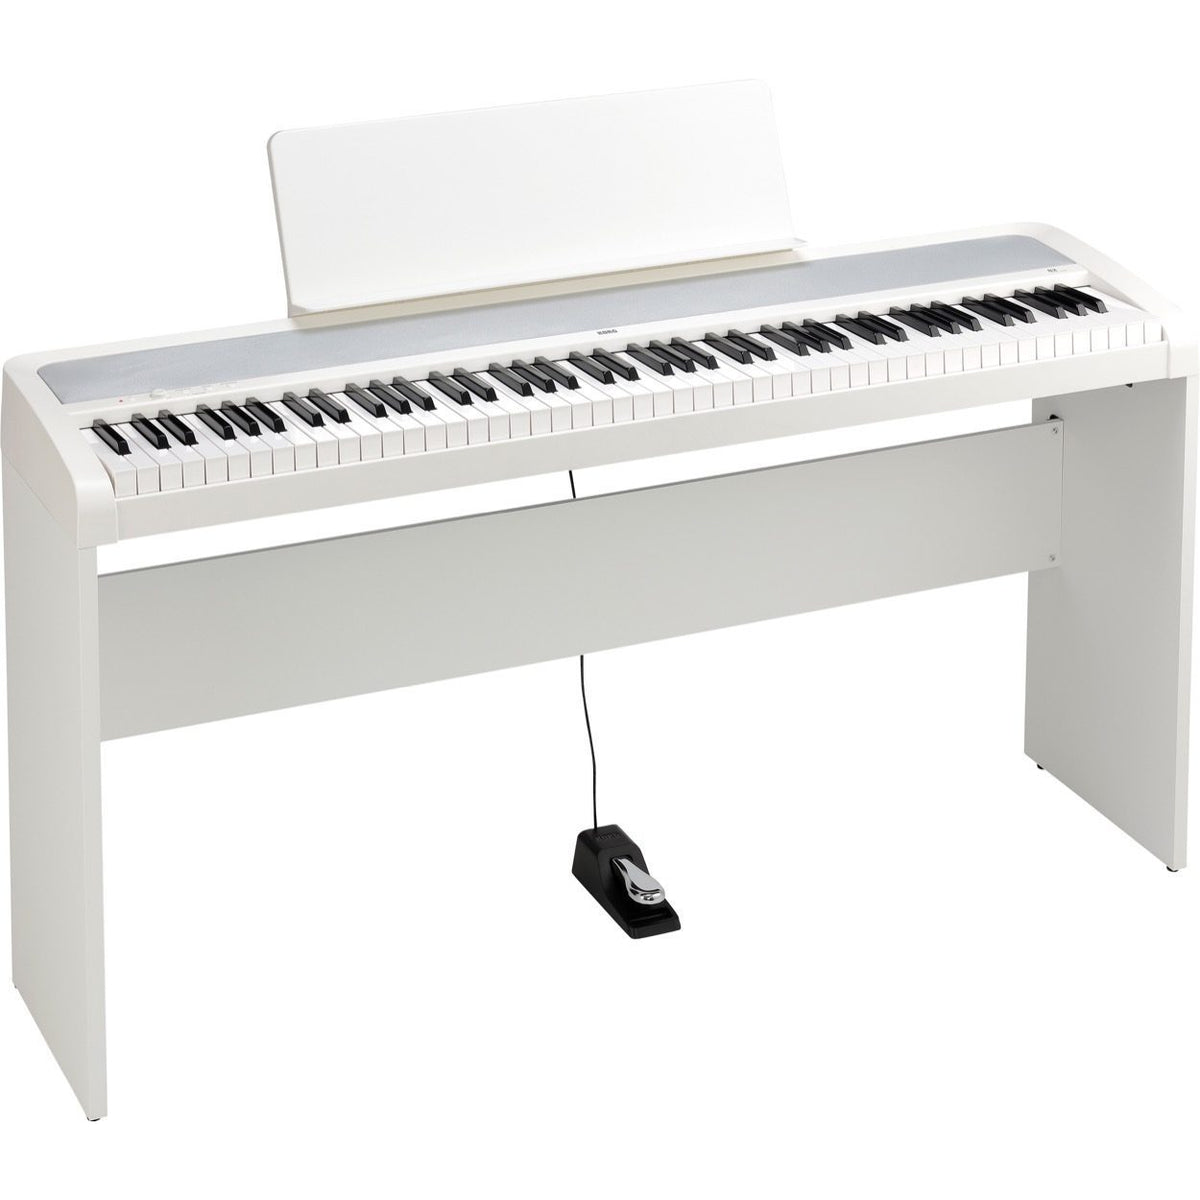 Korg B2 Digital Piano, 88-Key, White, with Stand and Pedal